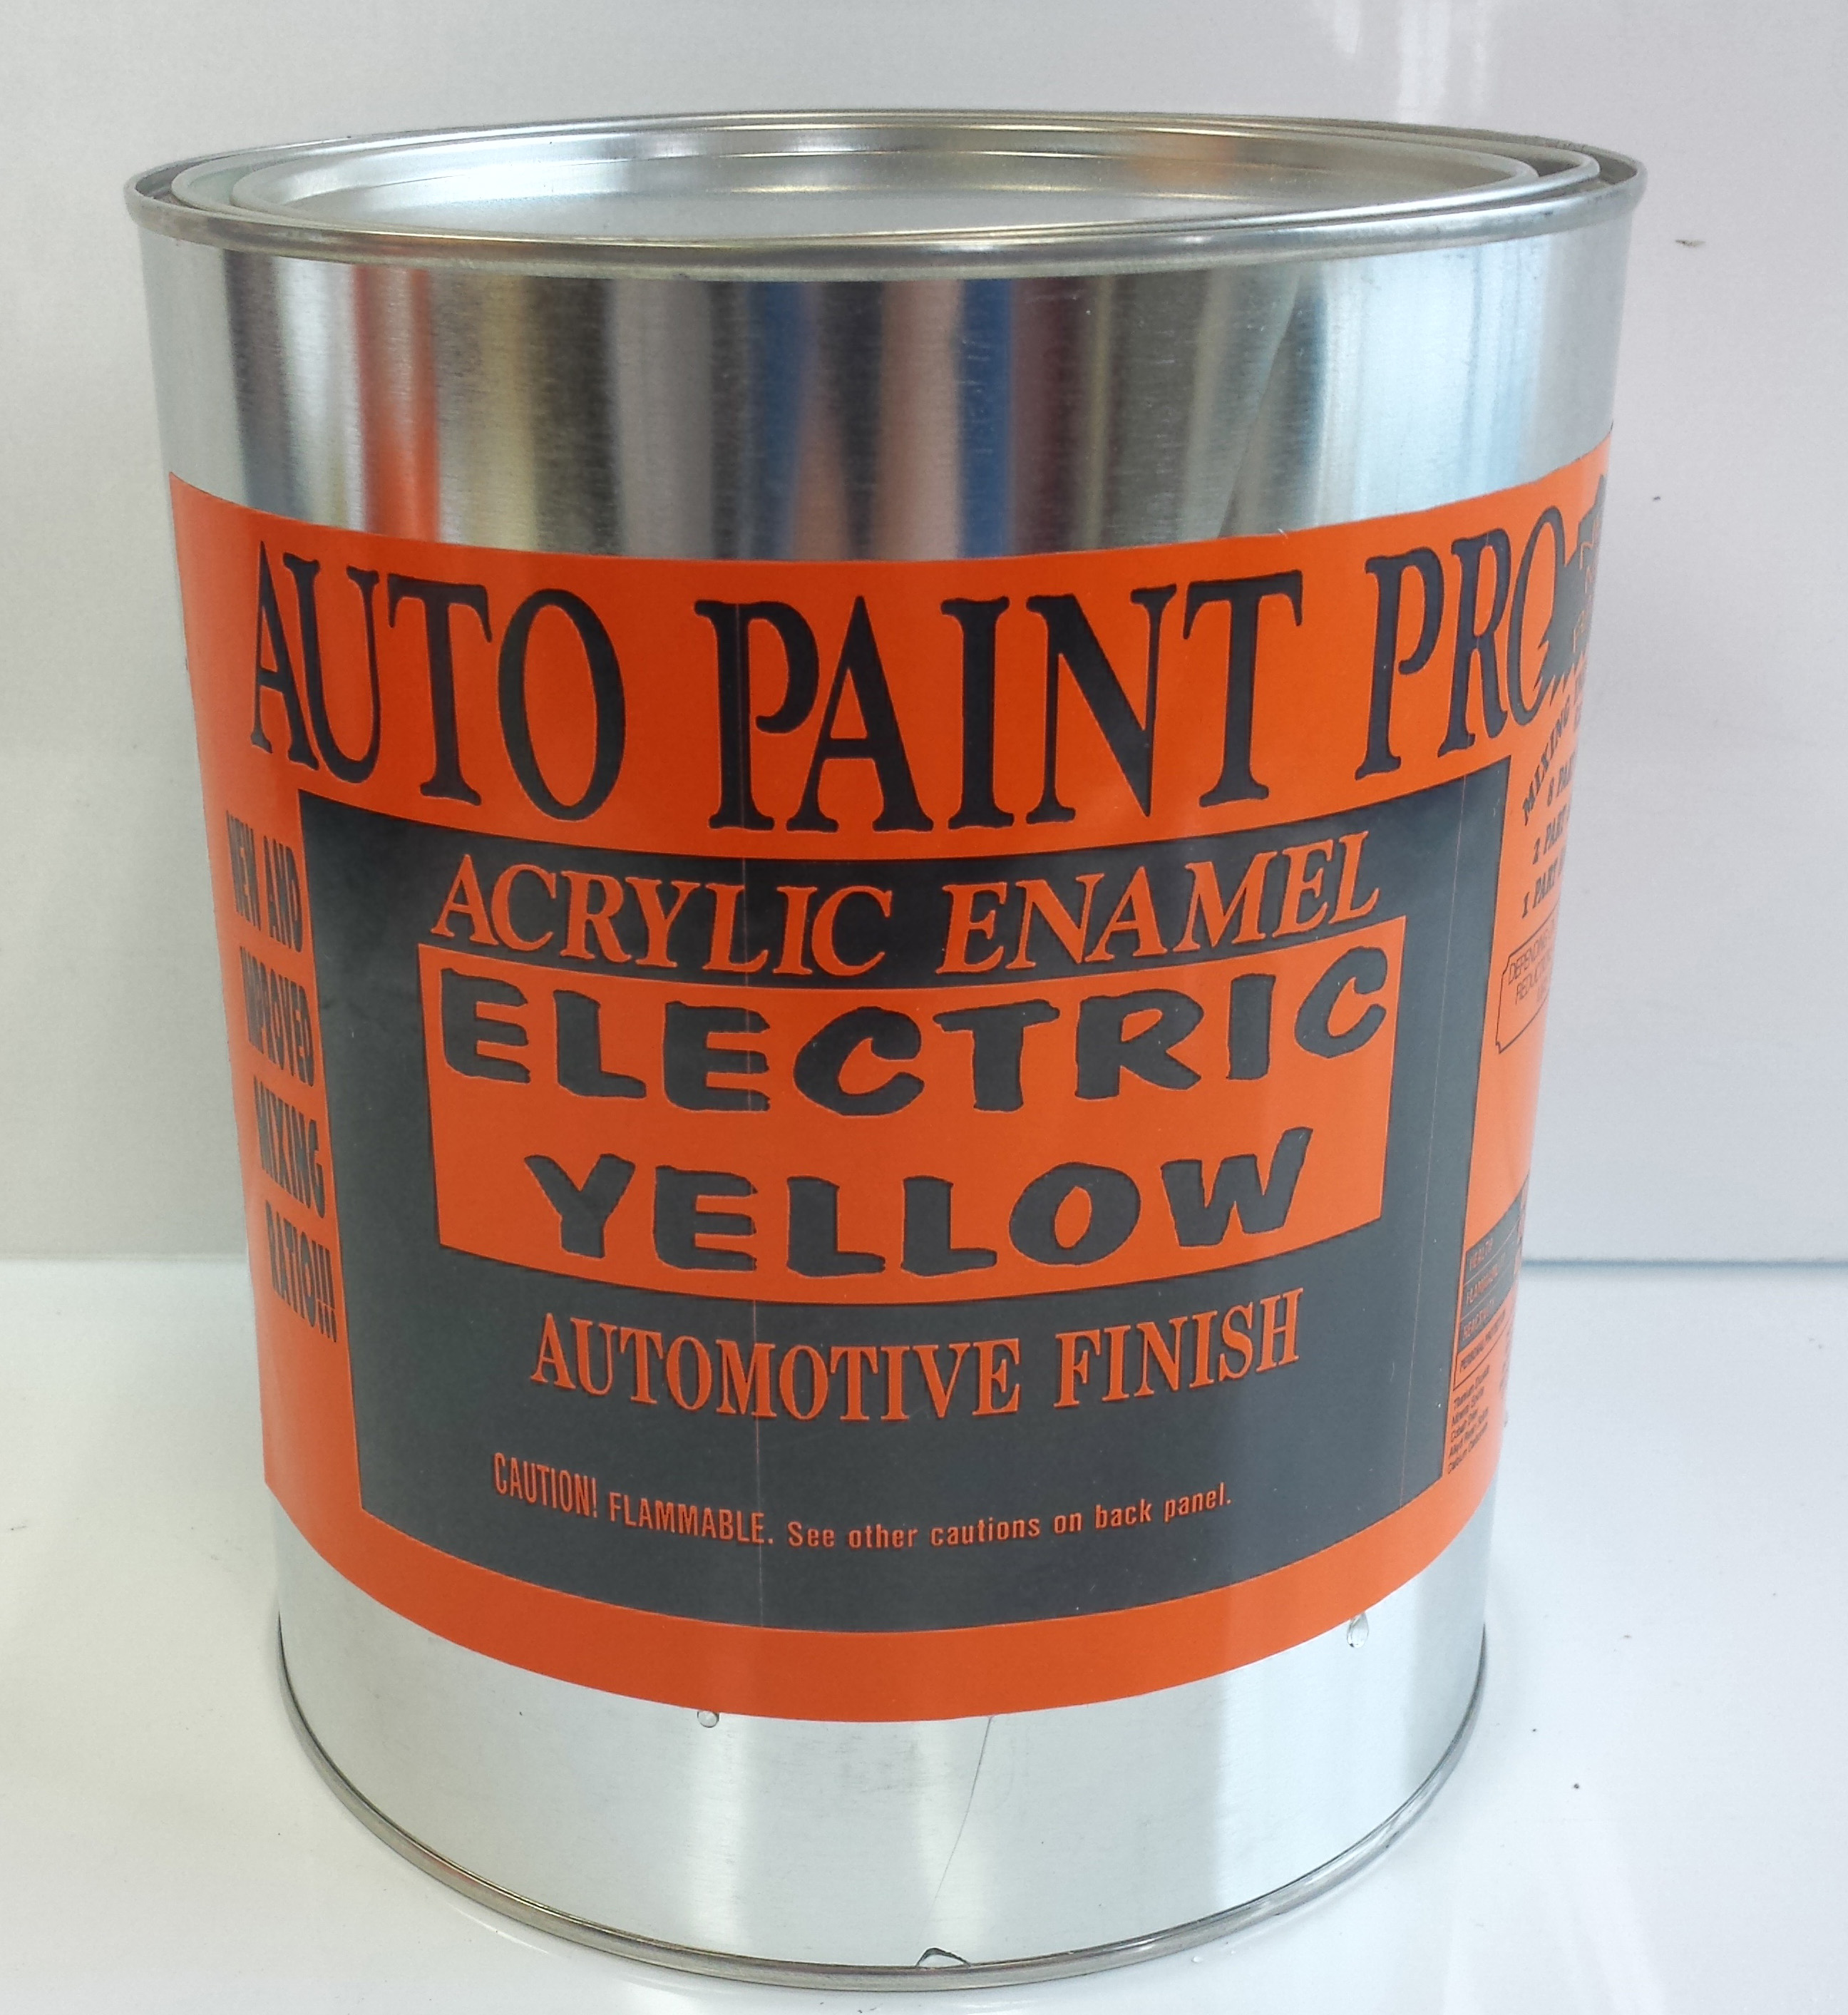 Electric Yellow Acrylic Enamel Auto Paint restoration car paint